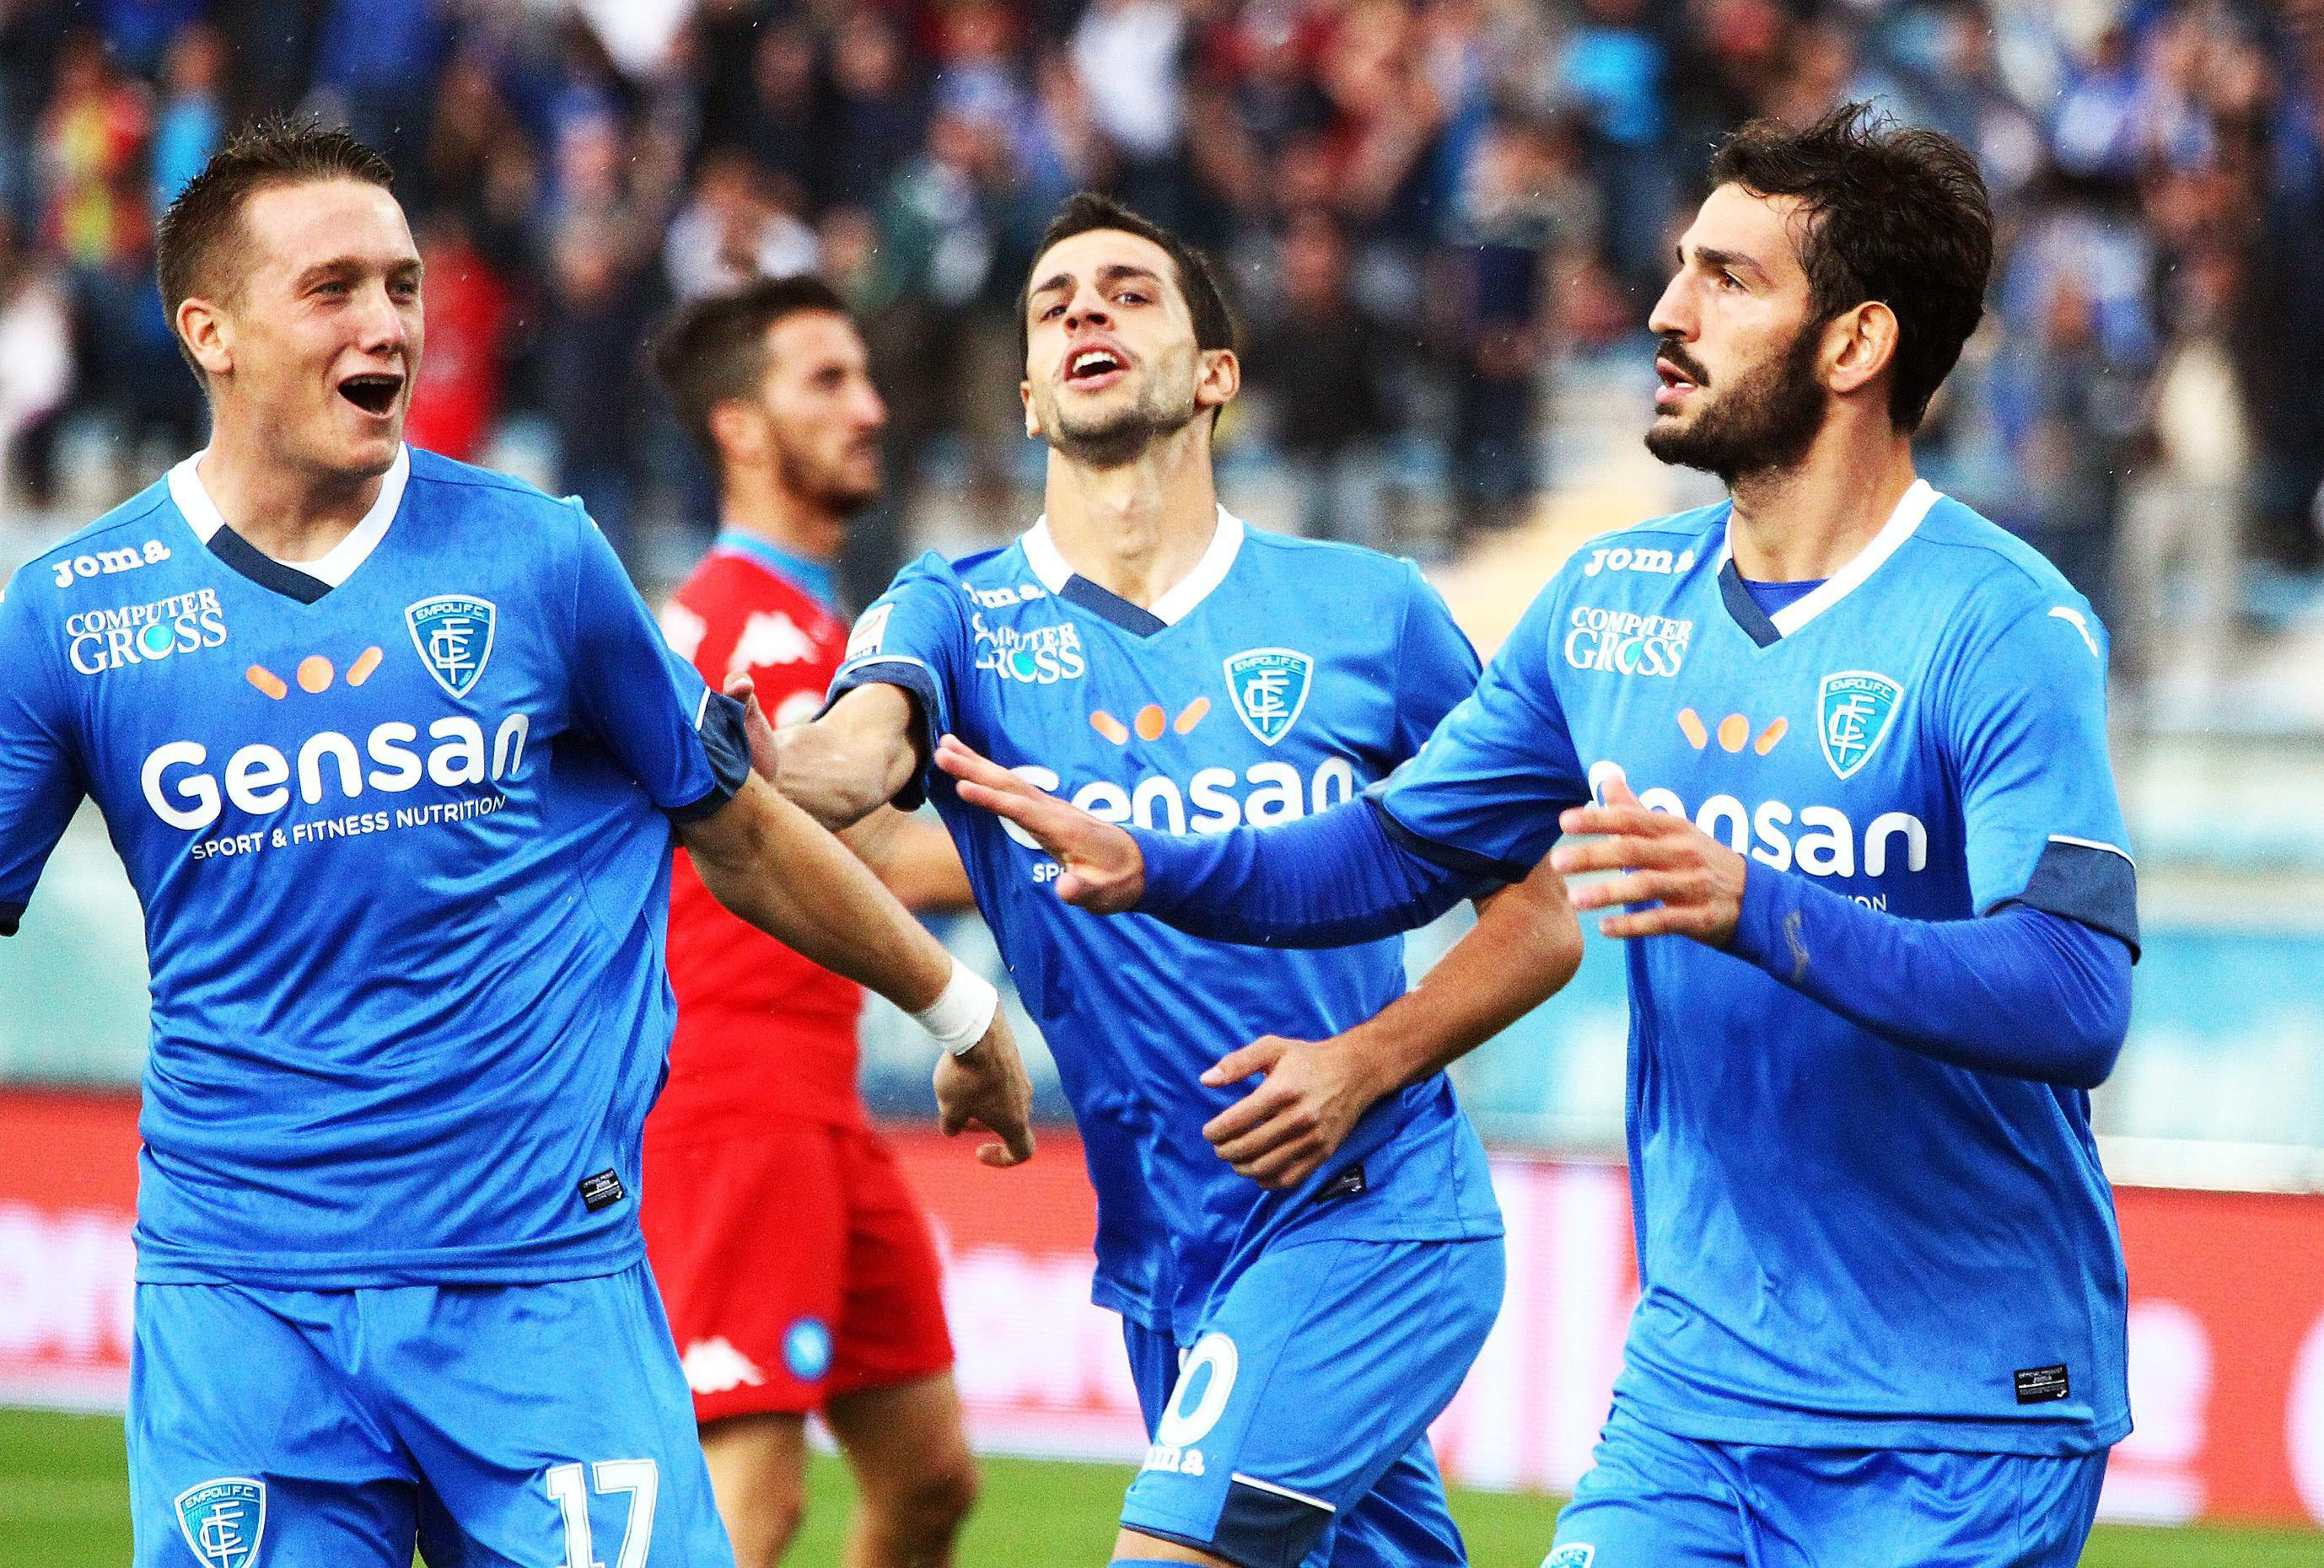 epa04928593 Empoli's midfielder Riccardo Saponara (R) celebrates after scoring the 1-1 goal during the Italian Serie A soccer match between Empoli FC and SSC Napoli at Carlo Castellani Stadium in Empoli, Italy, 13 September 2015.  EPA/FABIO MUZZI